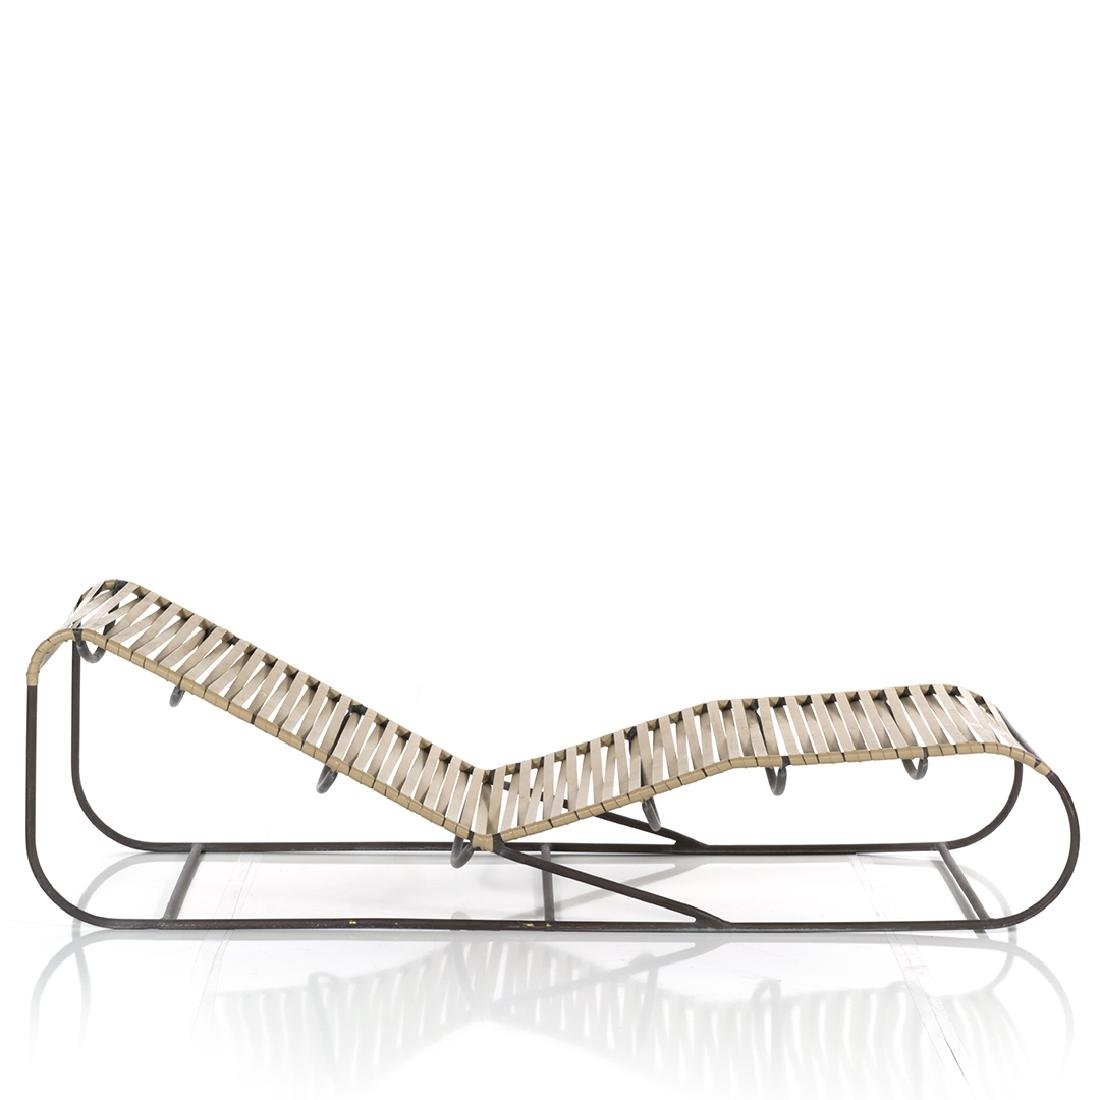 Kipp Stewart Bronze Chaise Lounges (2) - 3